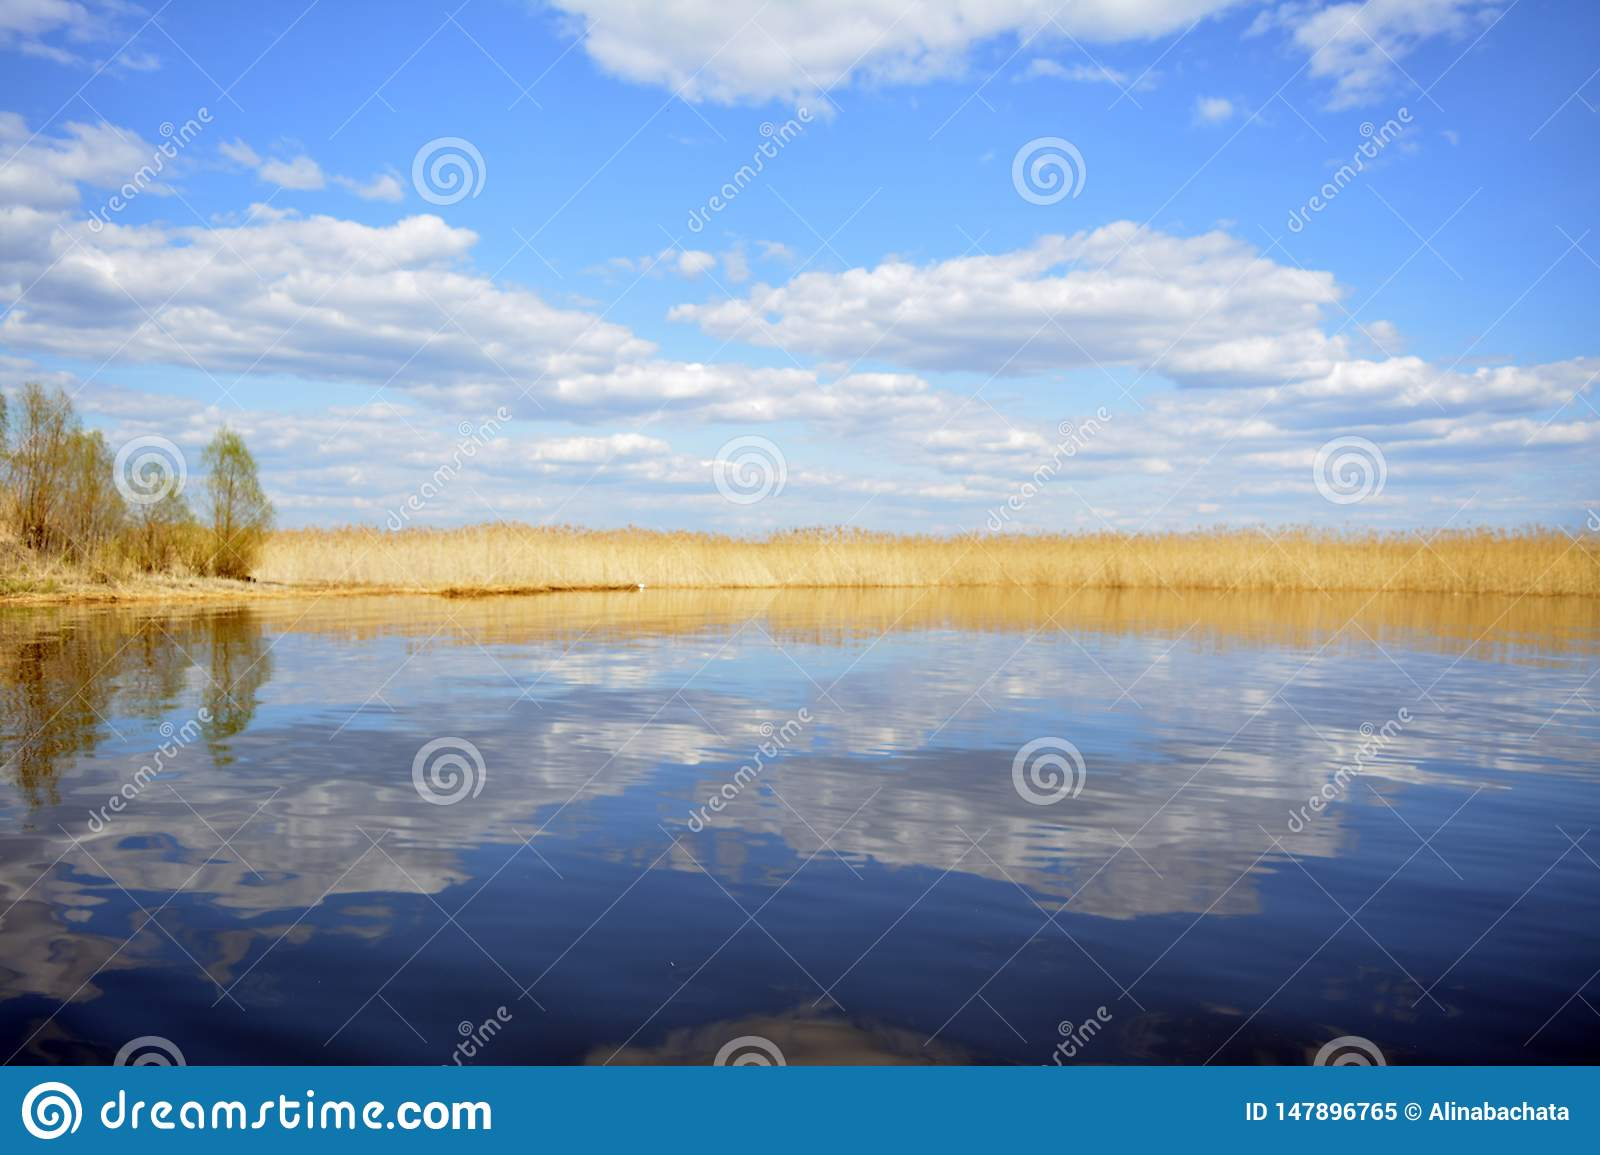 Marvelous nature of Lake Seliger